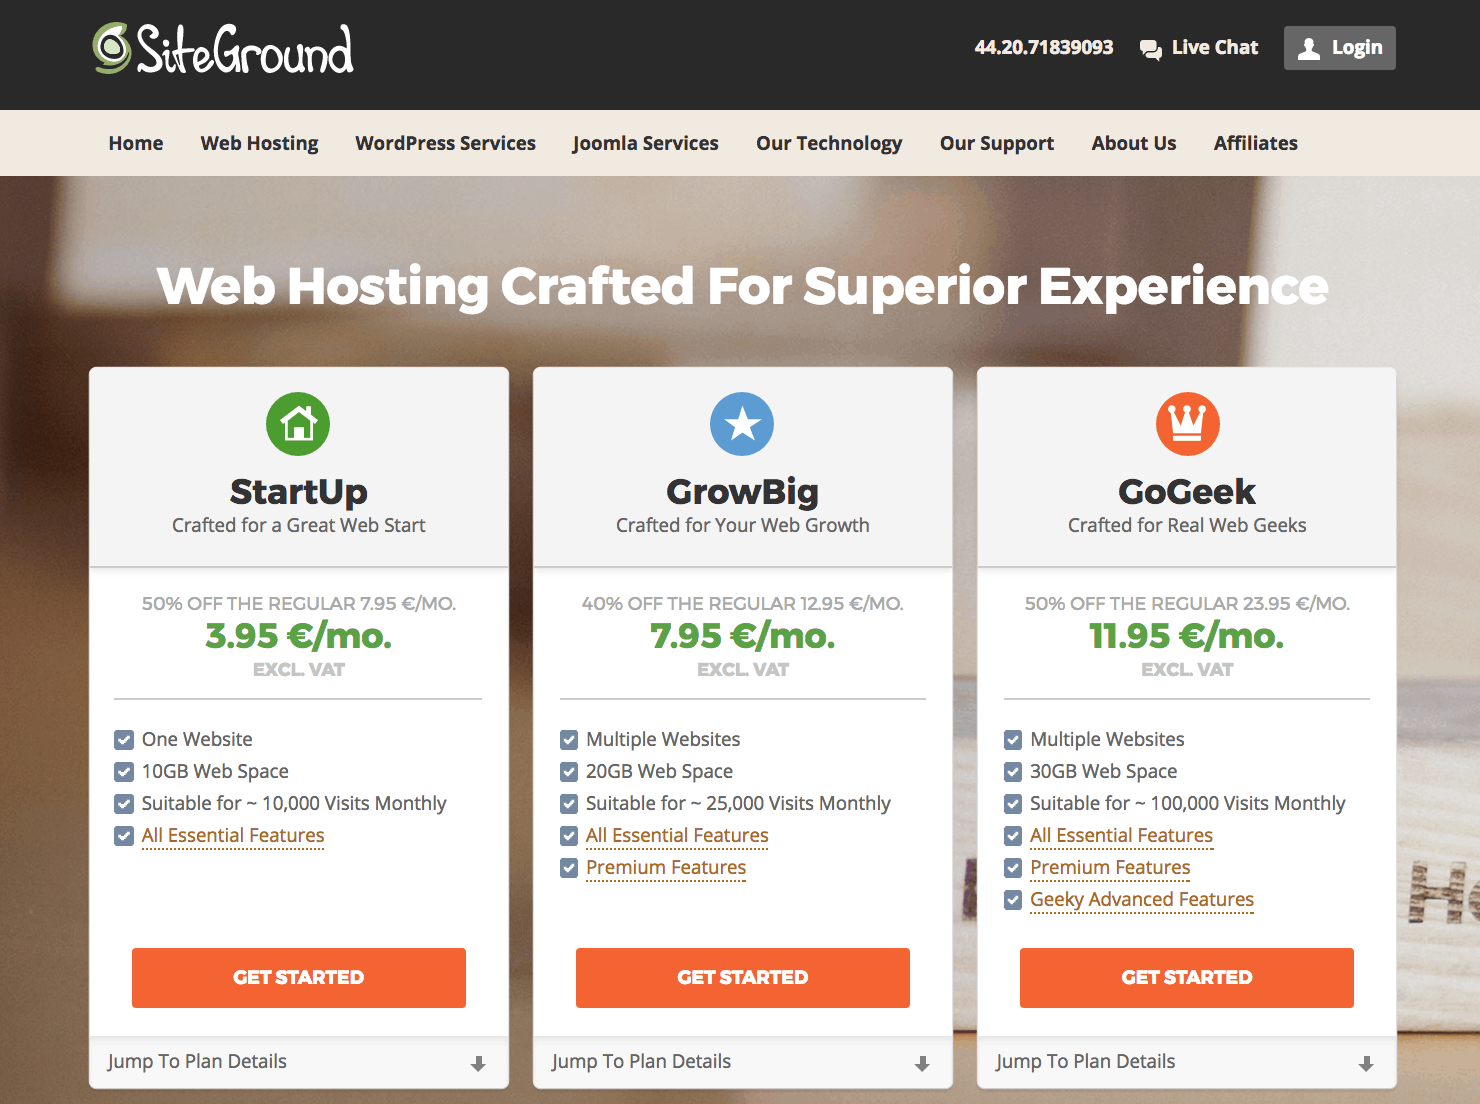 shared hosting discount offers